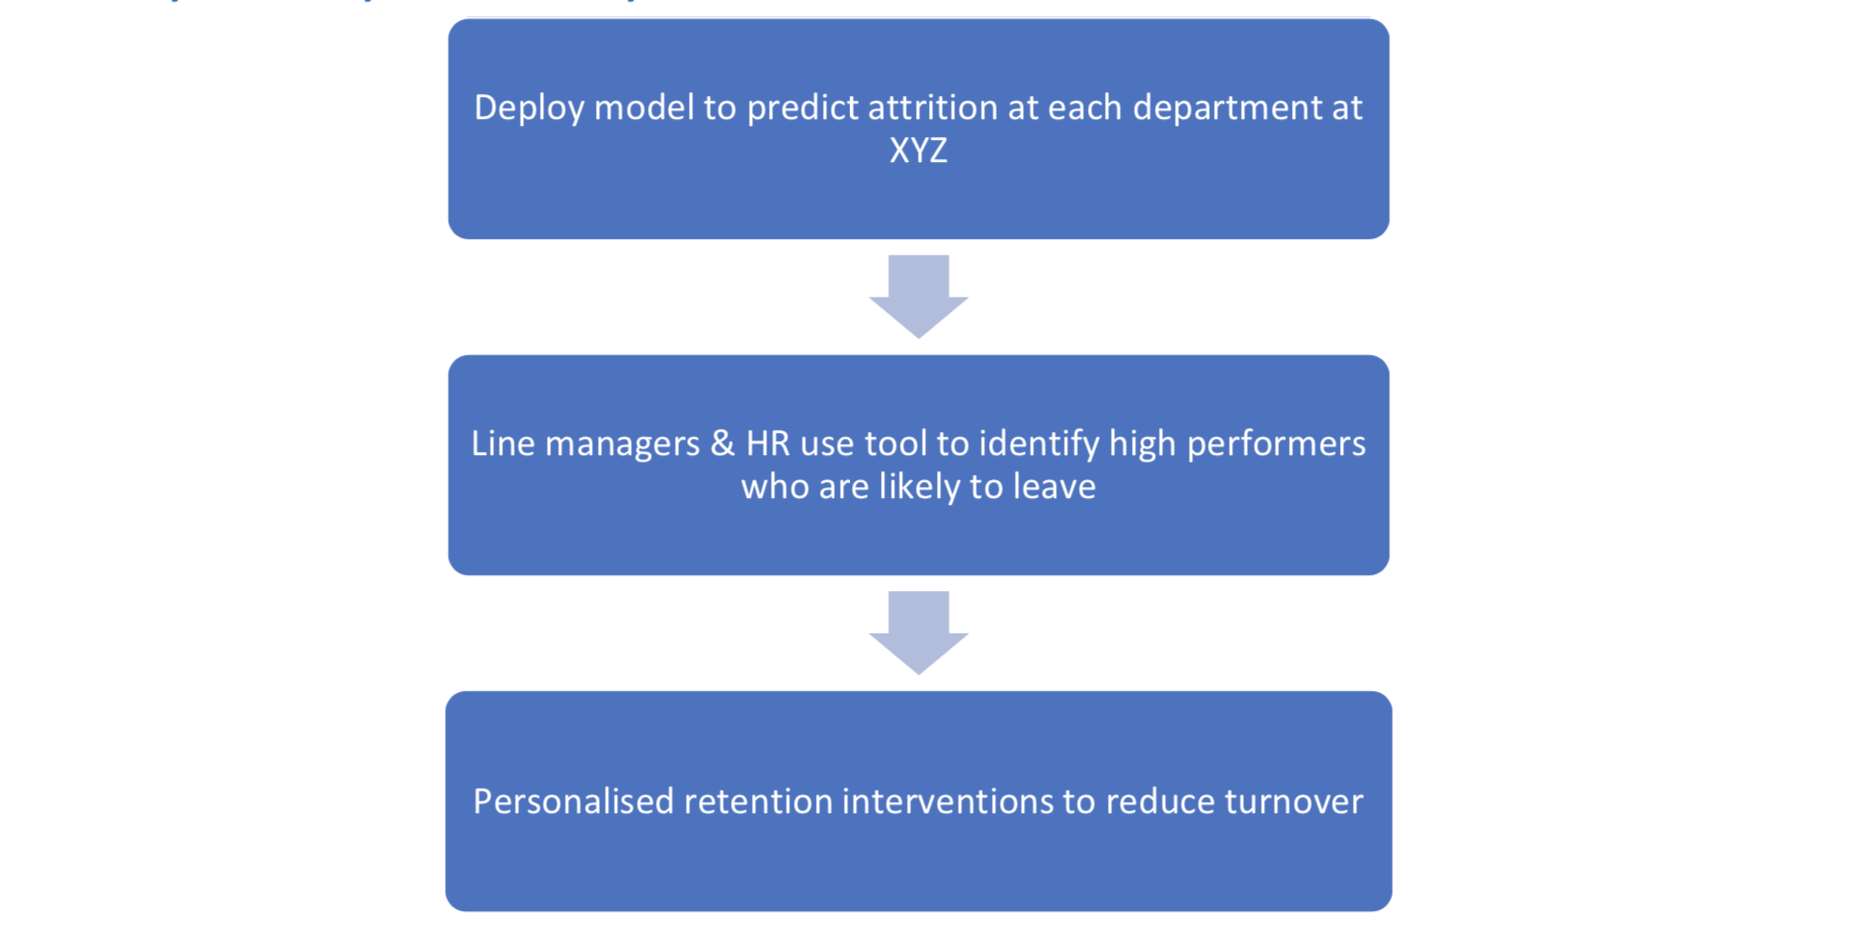 Fig 4: How XYZ uses the retention model